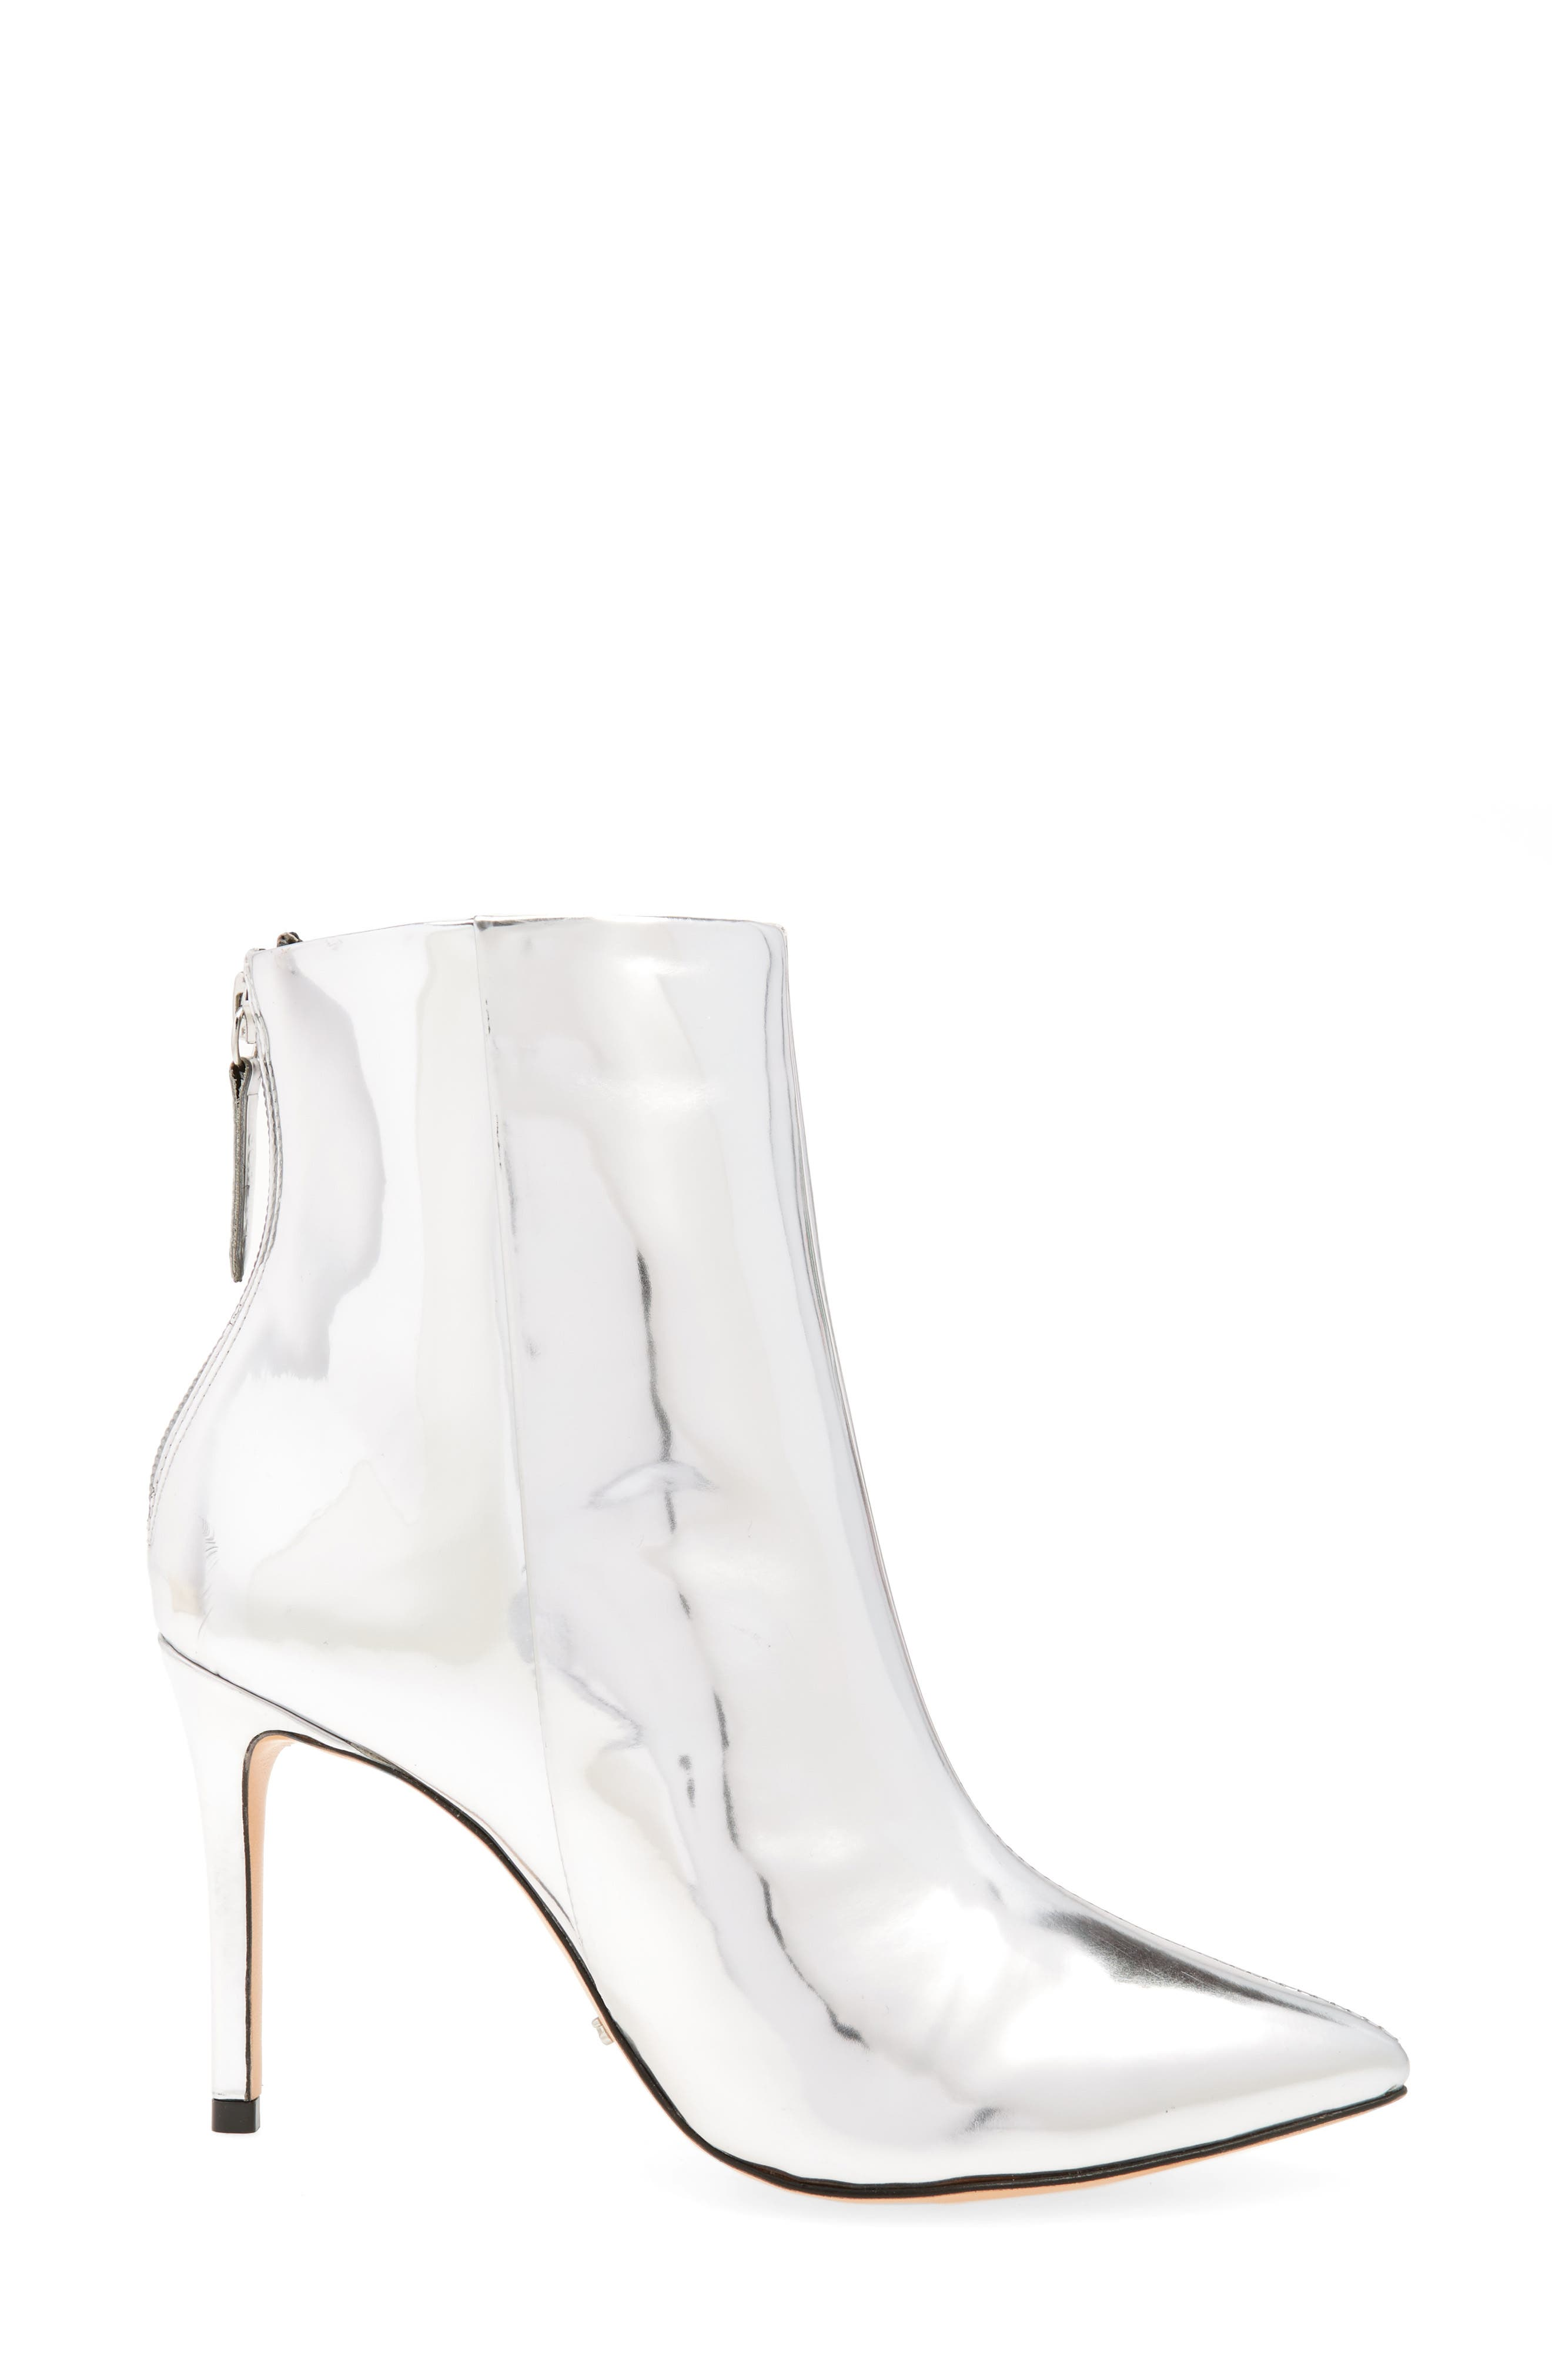 Ginny Pointy Toe Bootie,                             Alternate thumbnail 3, color,                             042